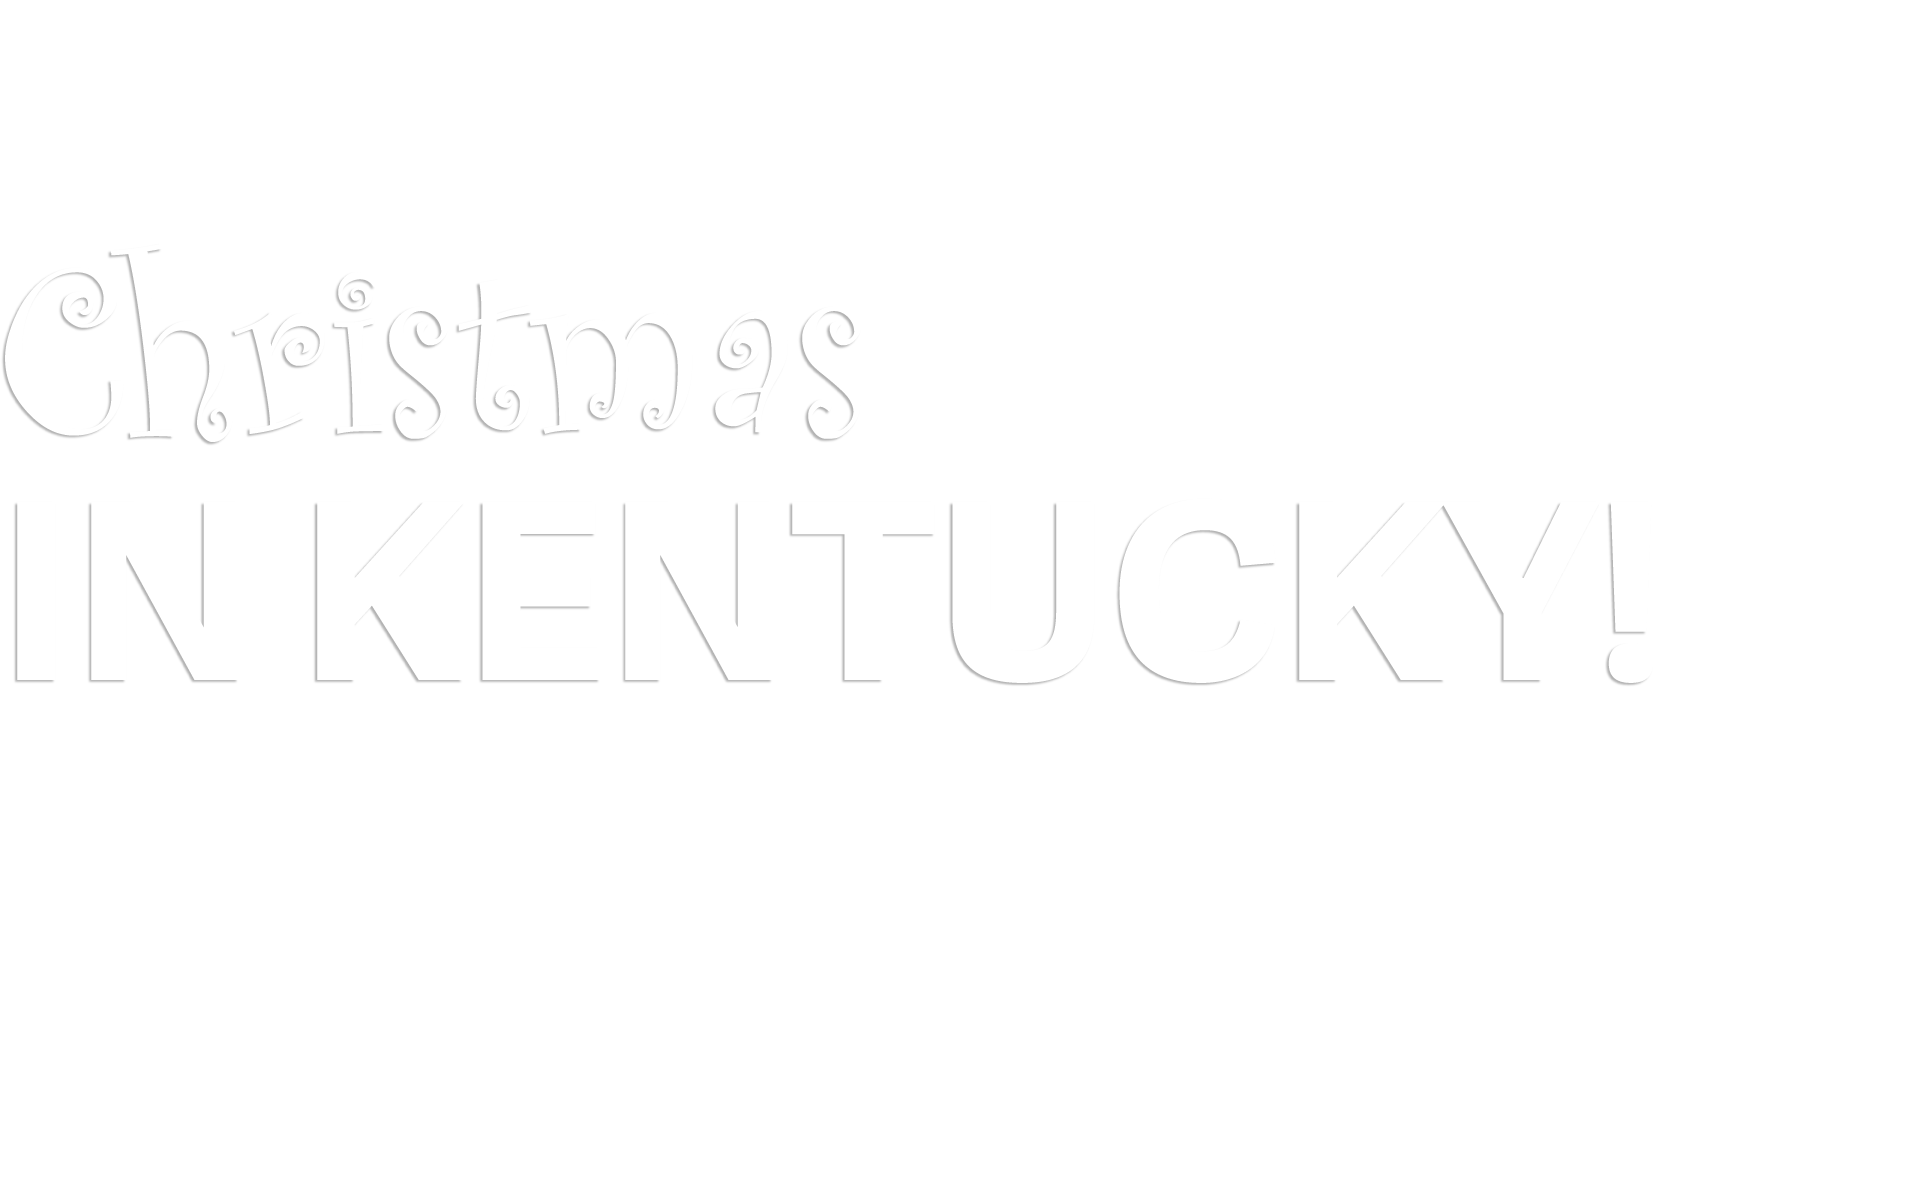 Shop Kentucky!